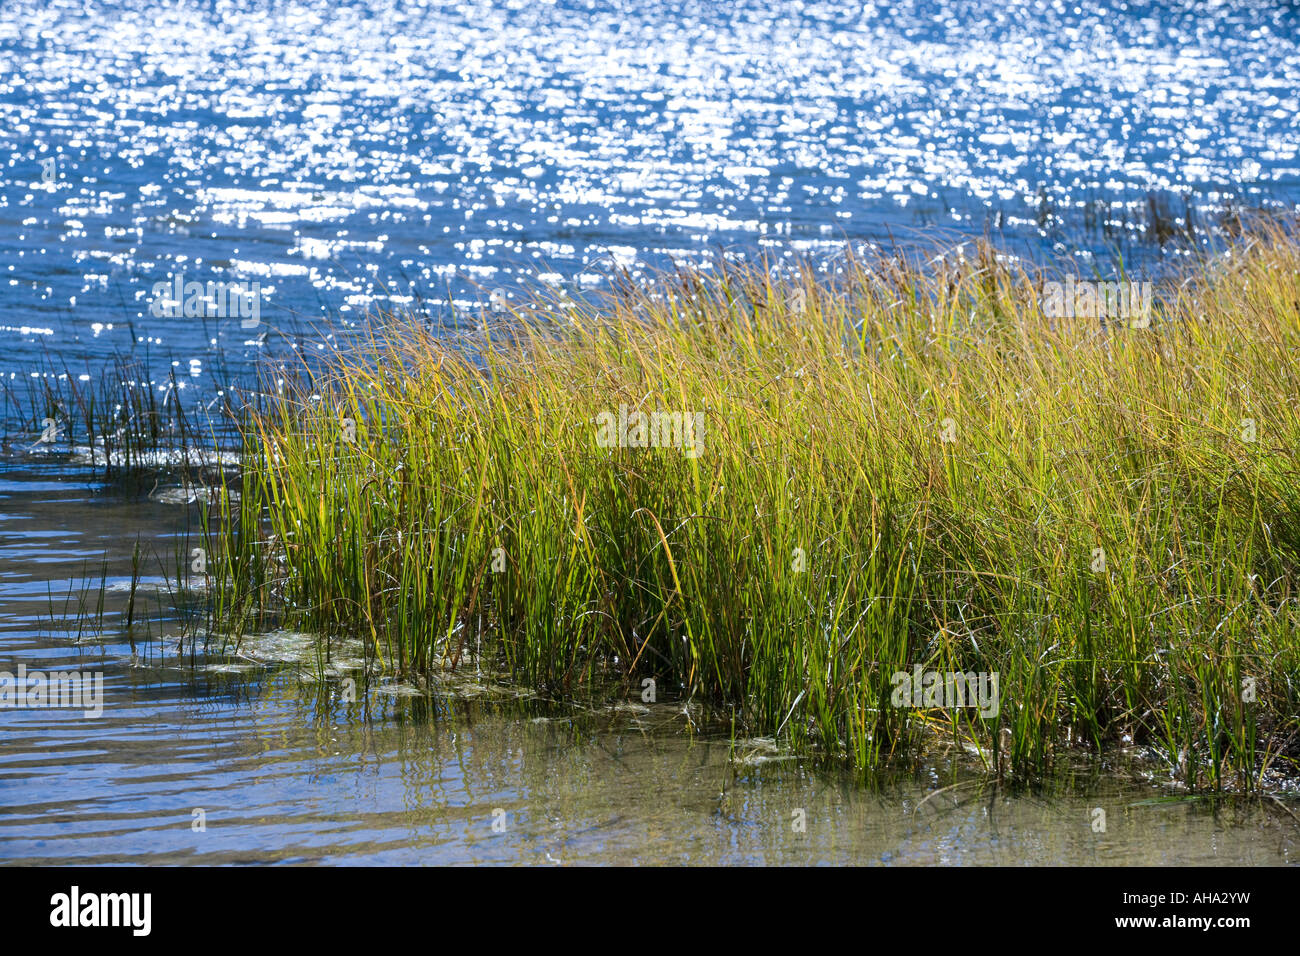 Grass reeds at the edge of a Colorado Lake - Stock Image